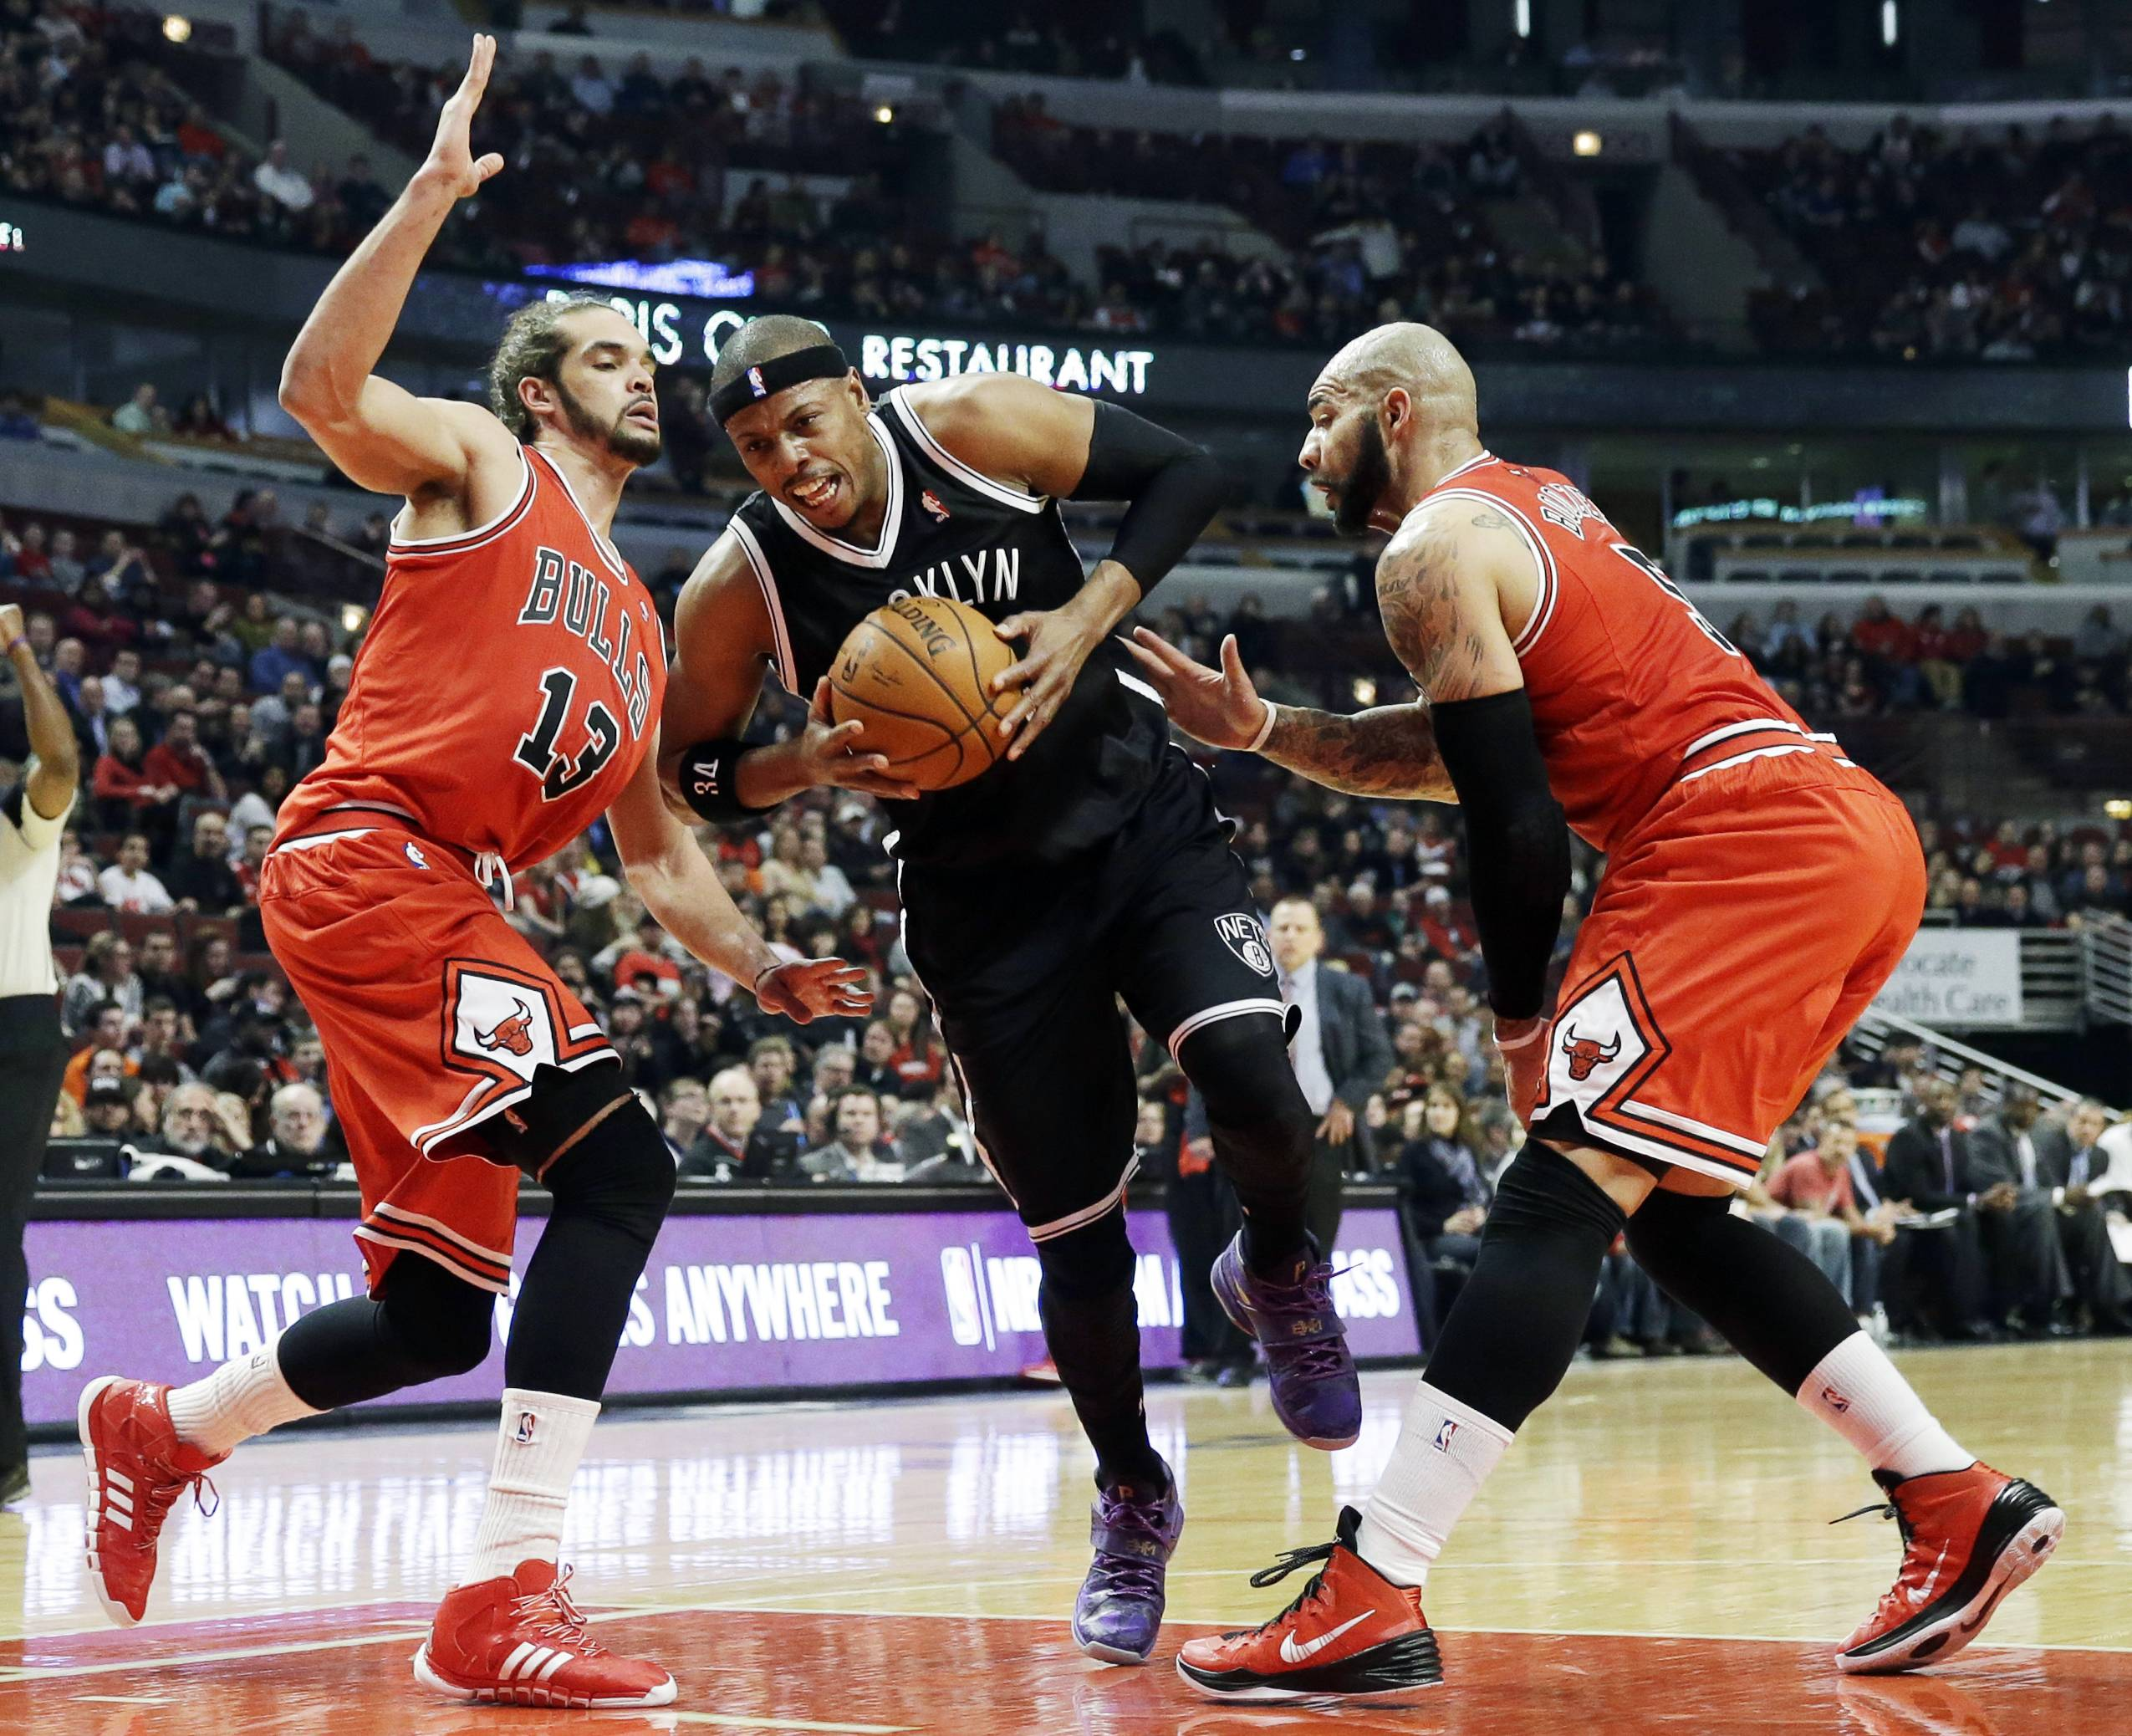 Brooklyn Nets forward Paul Pierce, center, drives to the basket as Chicago Bulls center Joakim Noah, left, and forward Carlos Boozer guard during the first half of an NBA basketball game in Chicago on Thursday, Feb. 13, 2014. (AP Photo/Nam Y. Huh)